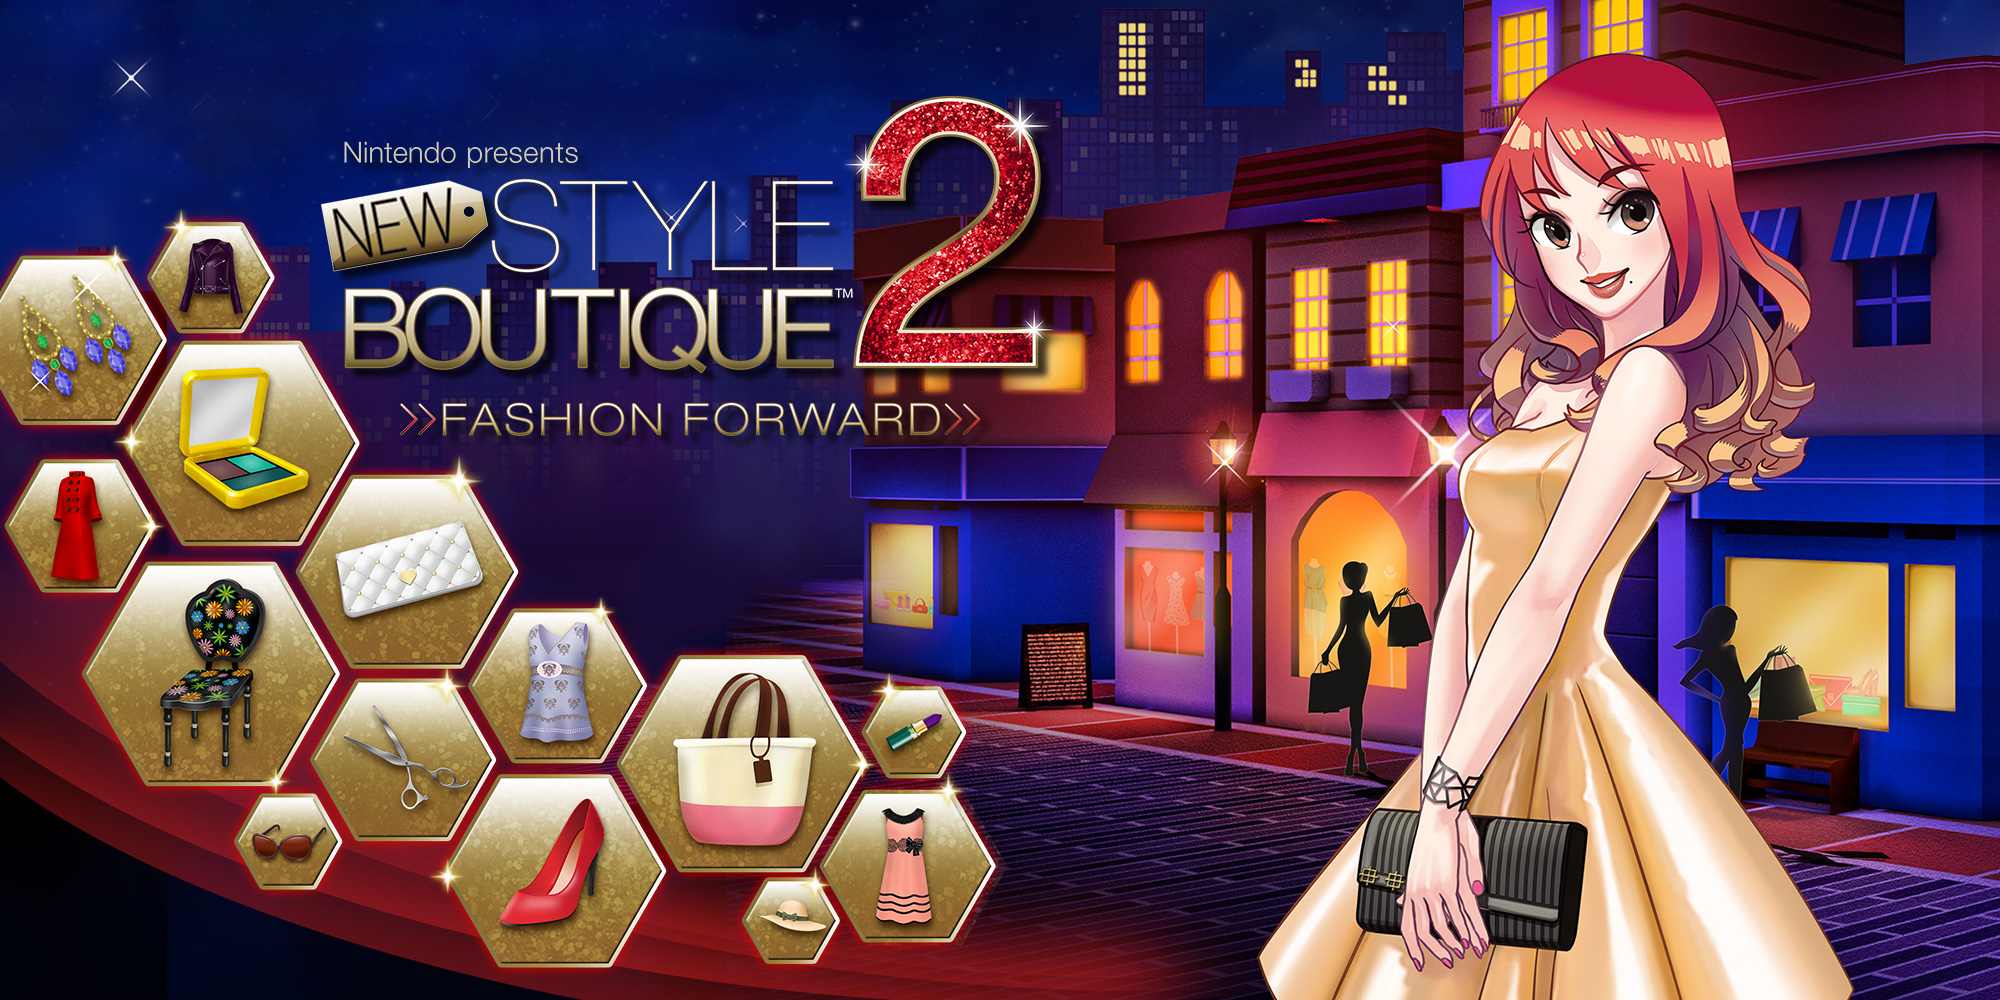 Nintendo Presents New Style Boutique 2 Fashion Forward